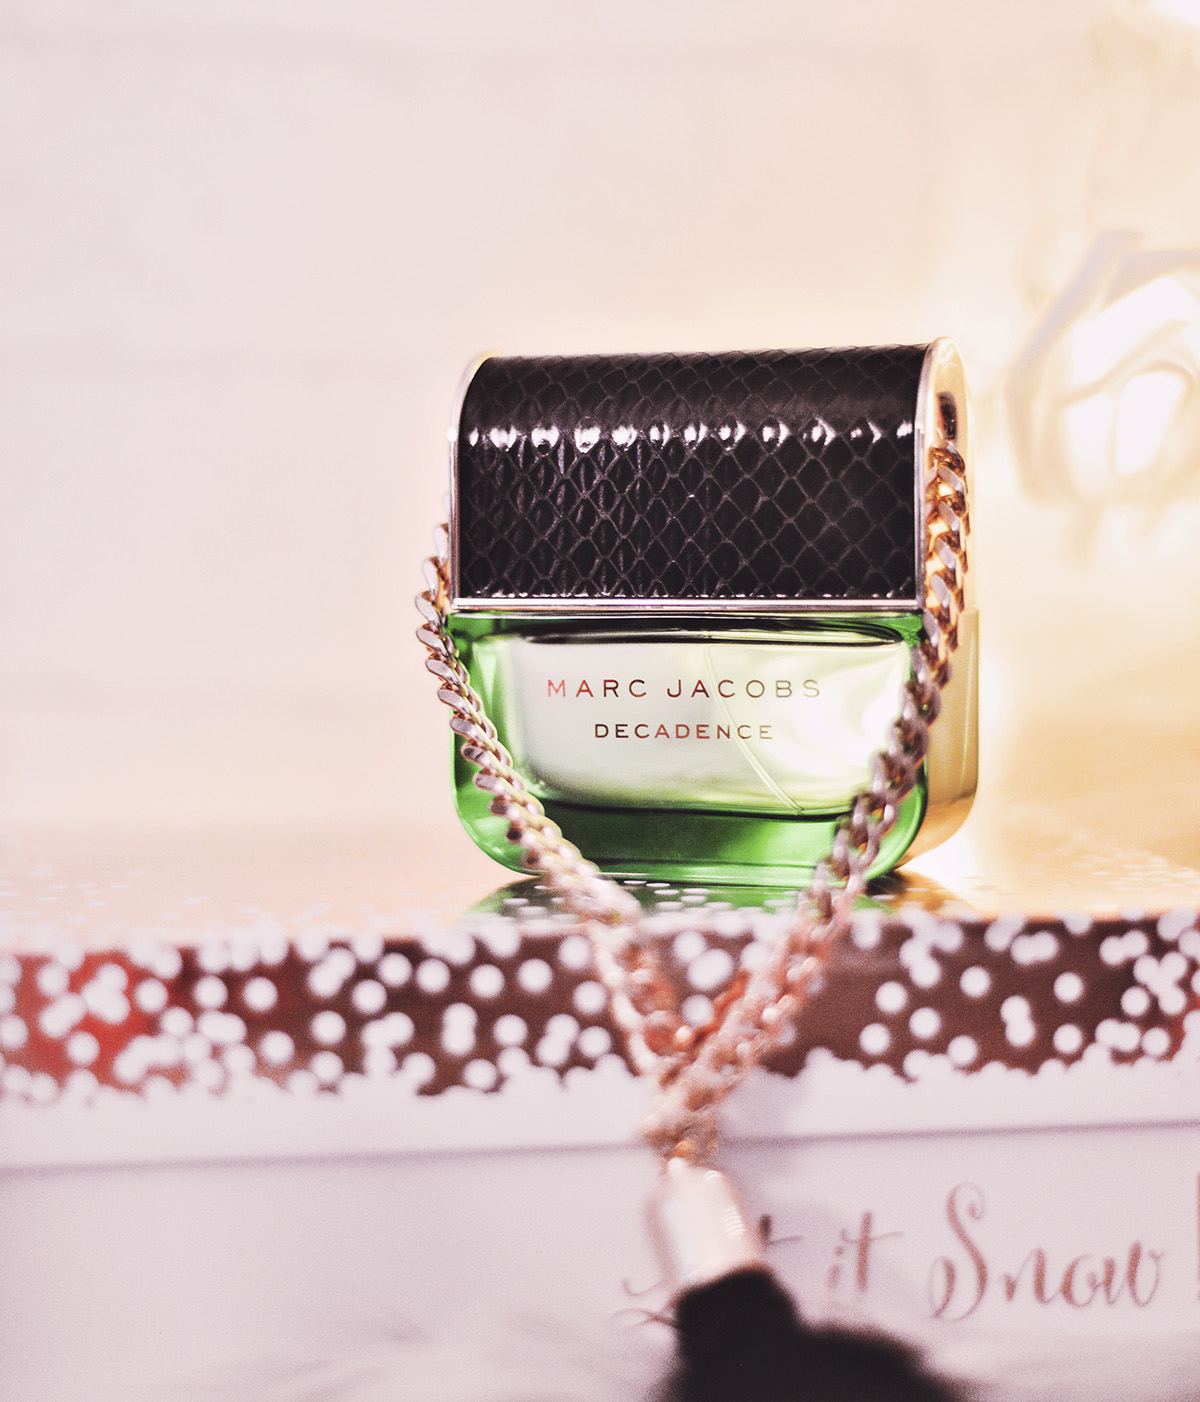 Holiday gift guide: Marc Jacobs Decadence